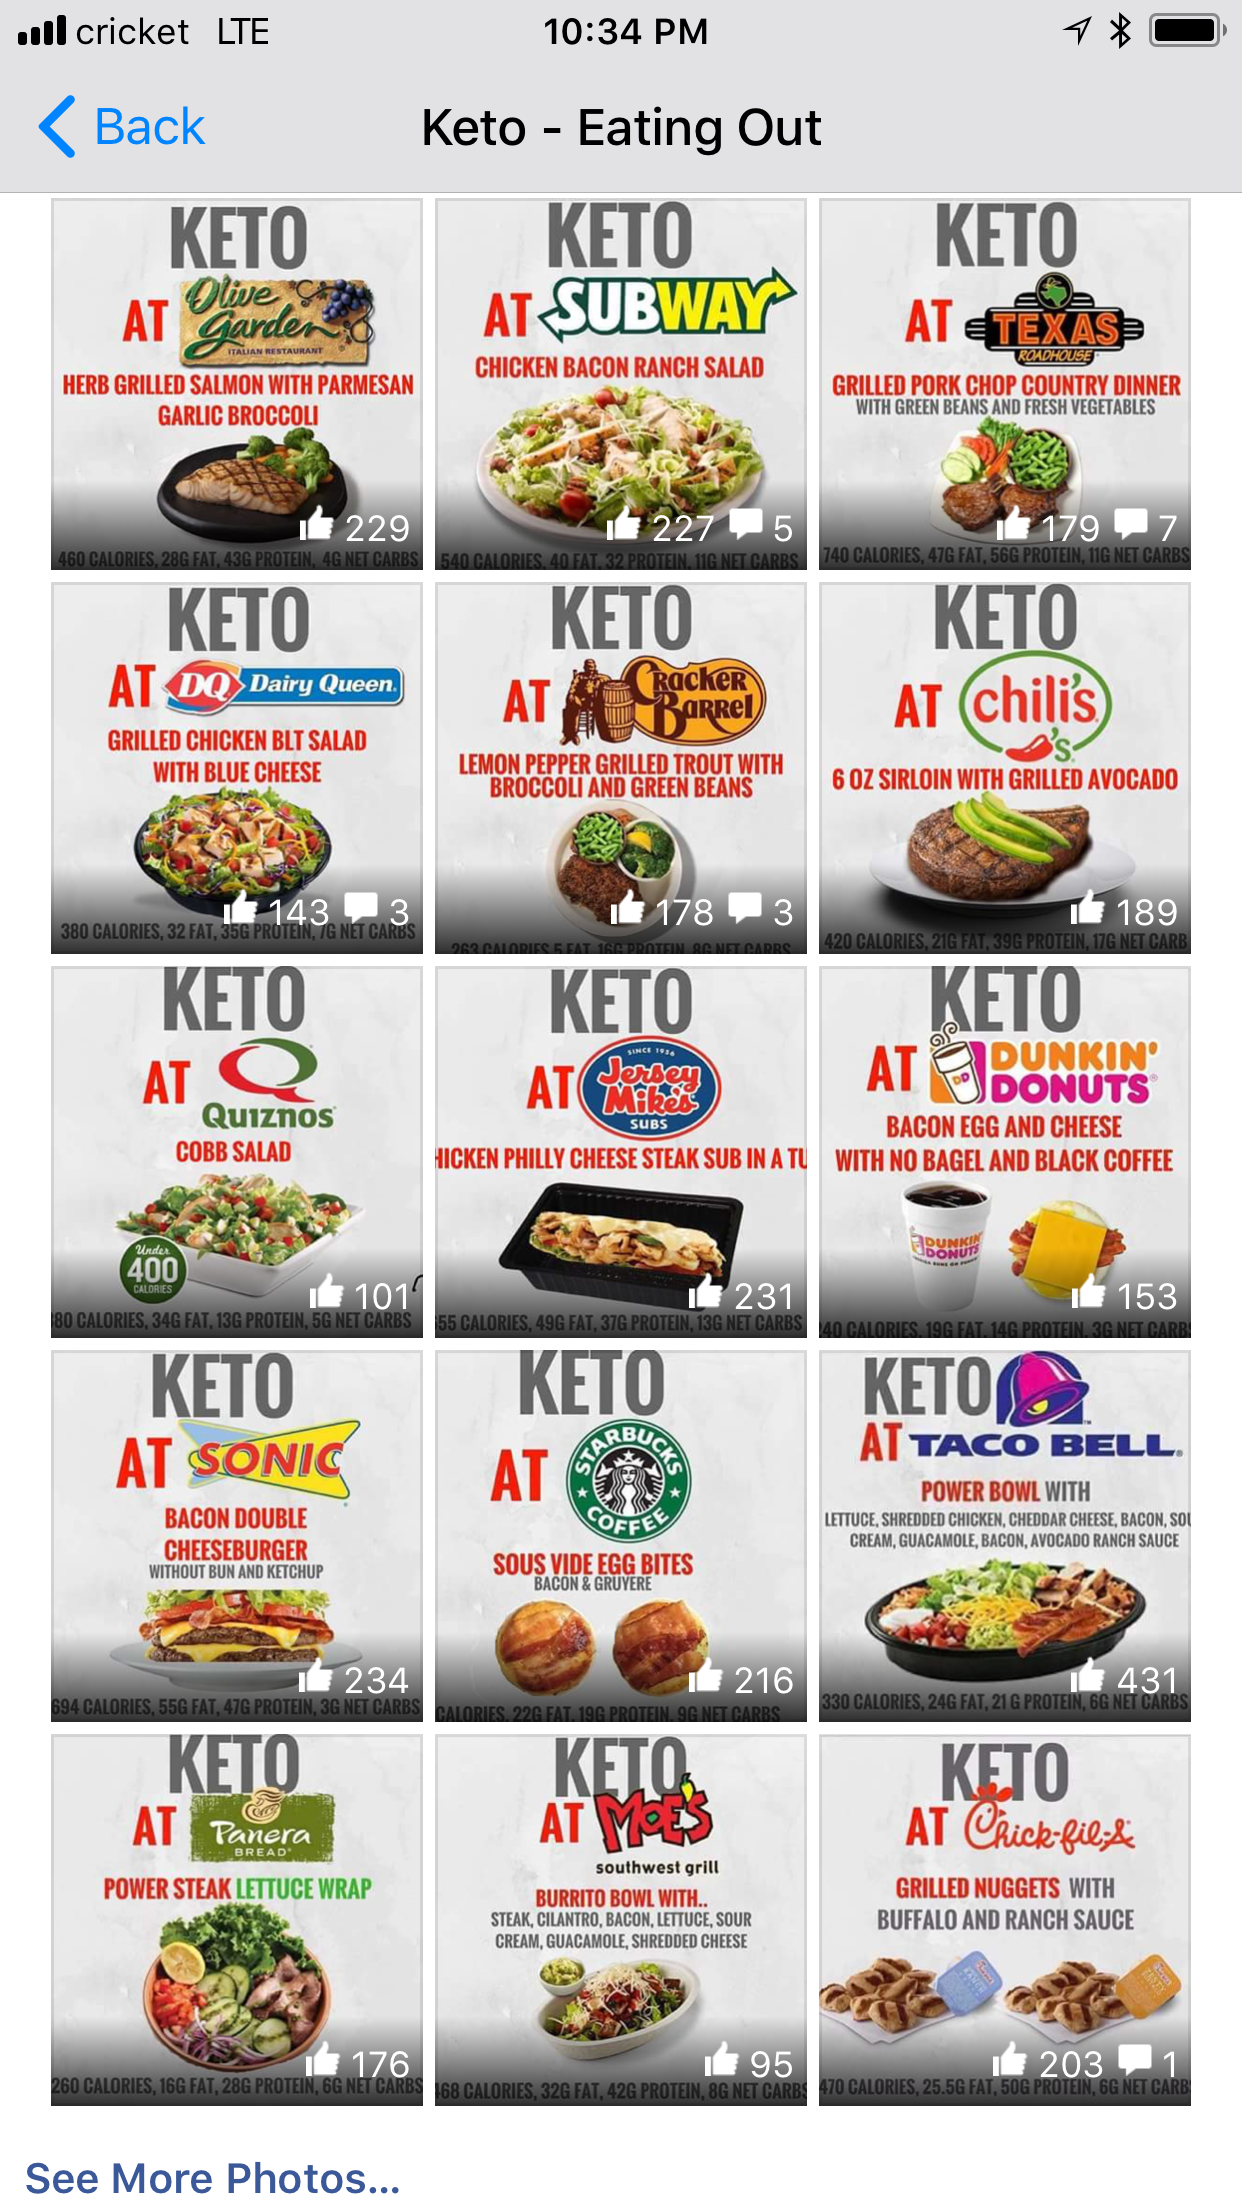 keto diet restaurants breakfast